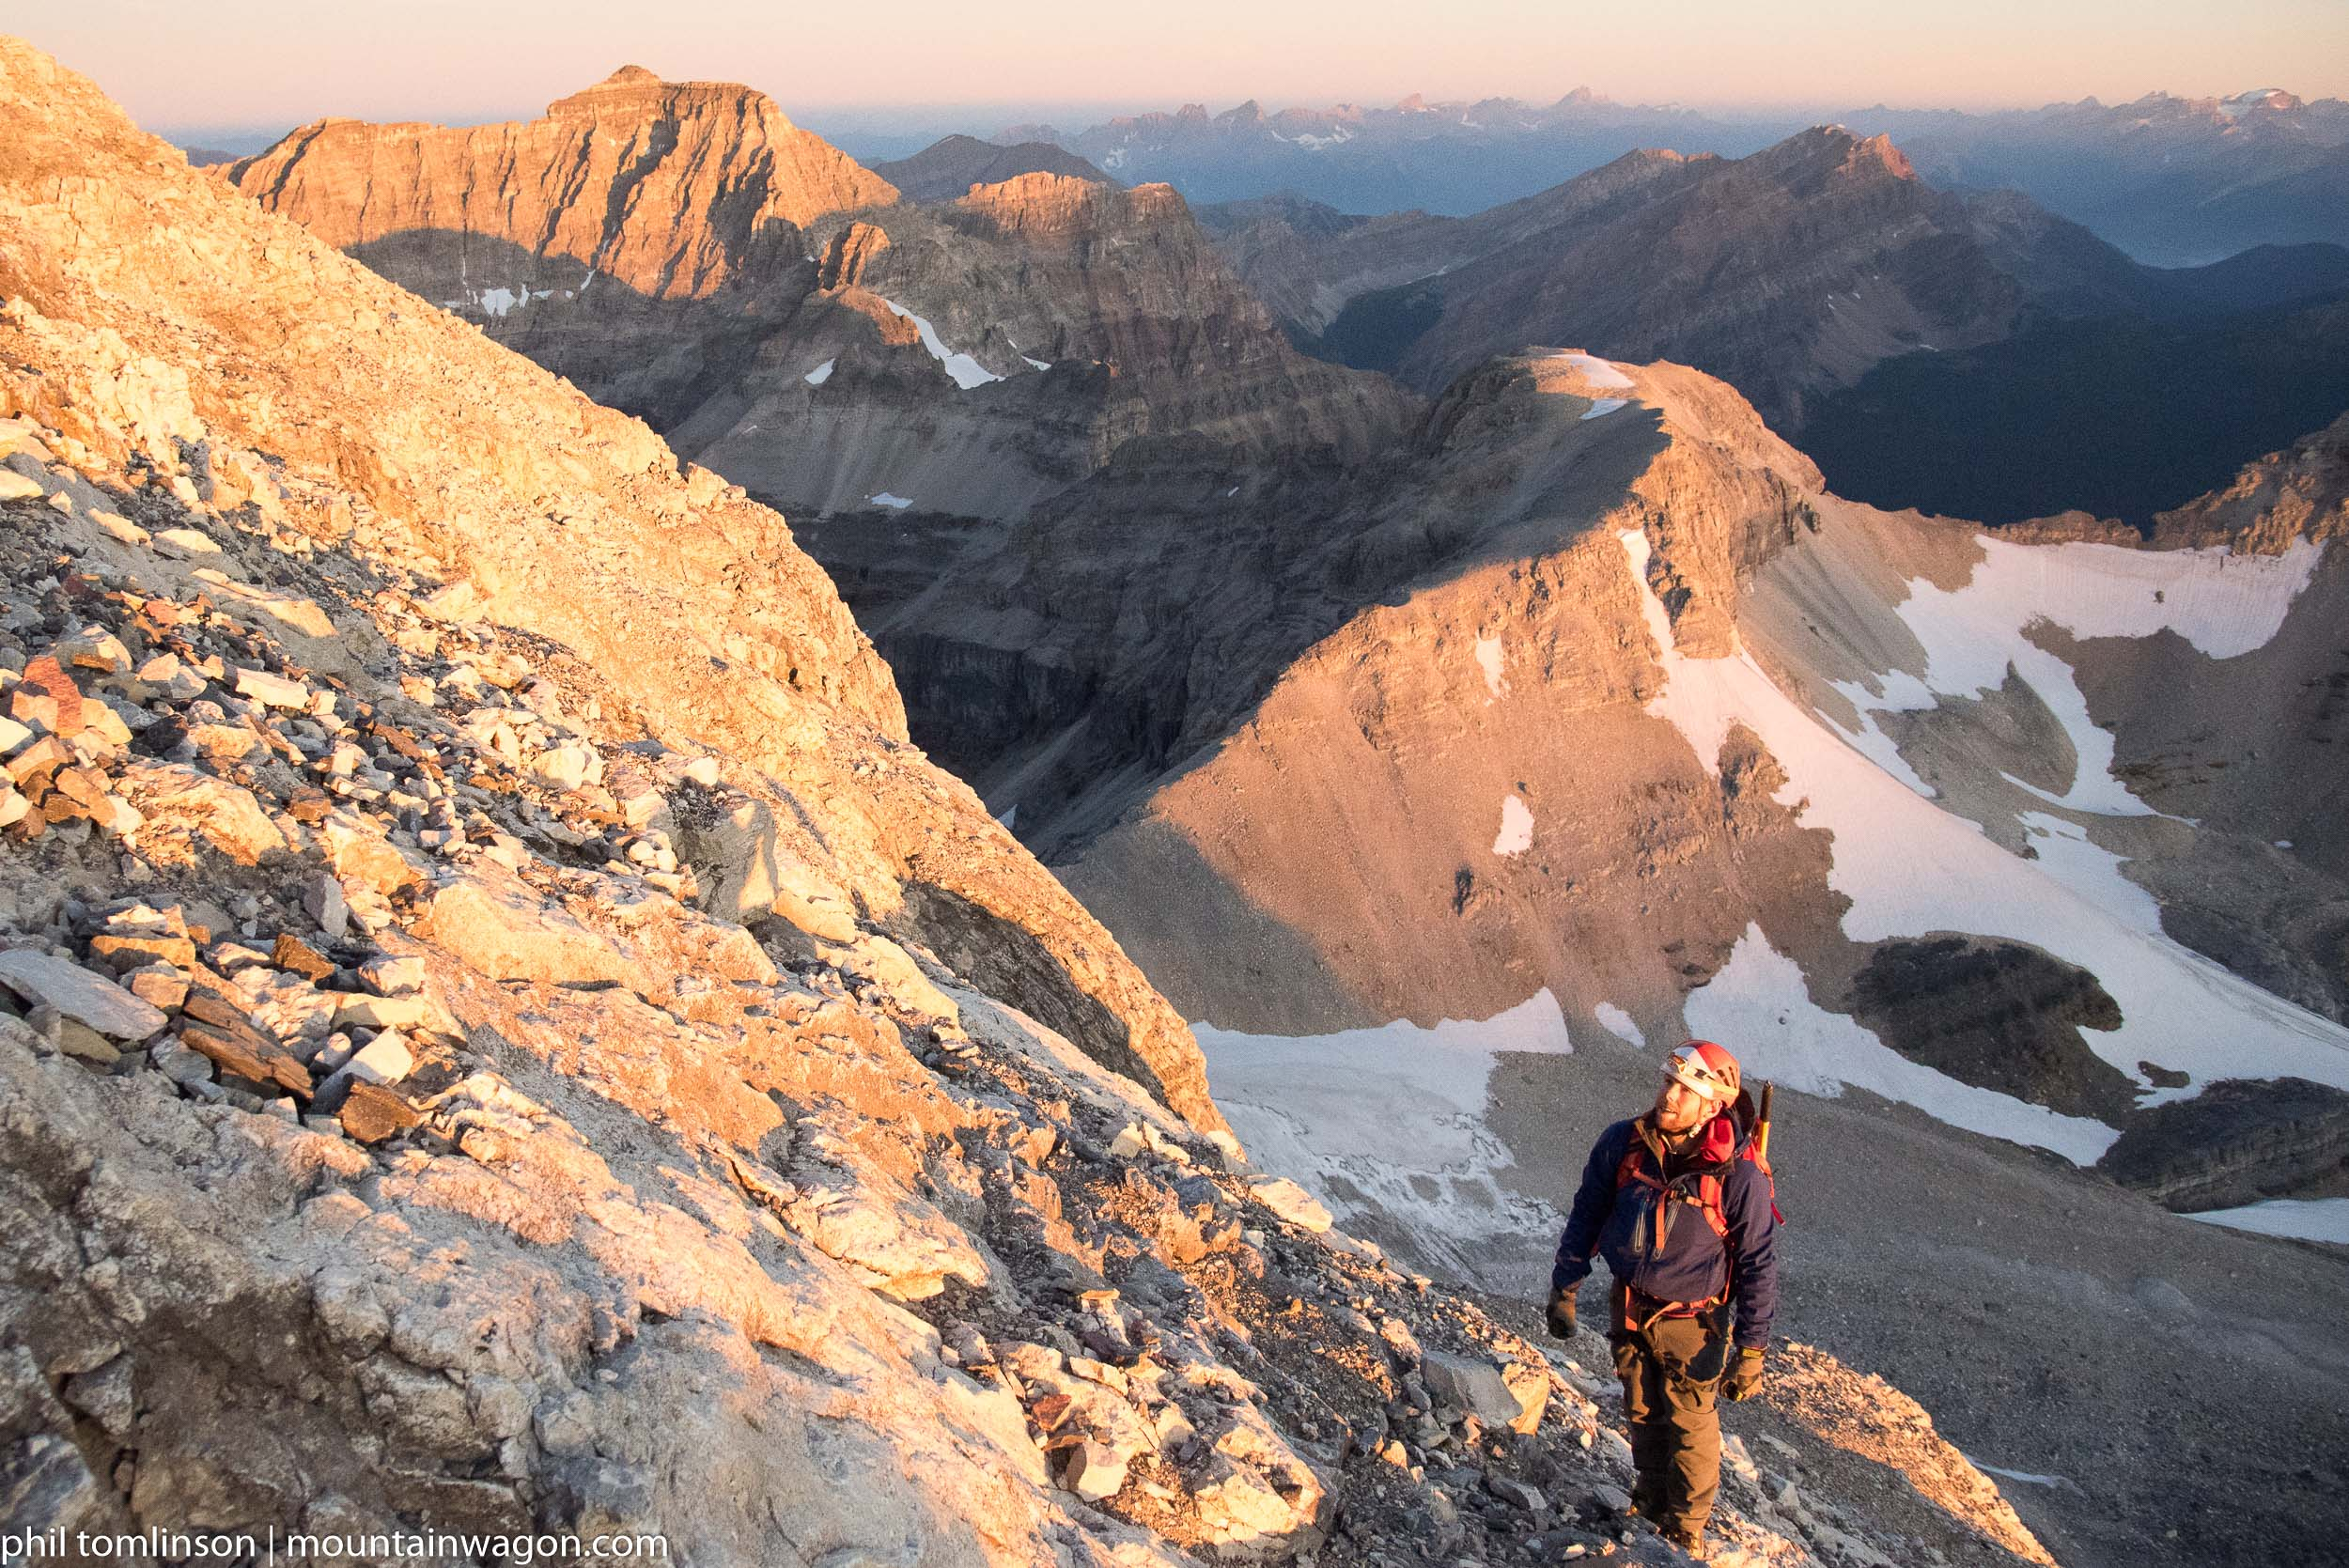 By the time true dawn hit, we were making progress up the slabby lower slopes of Assiniboine